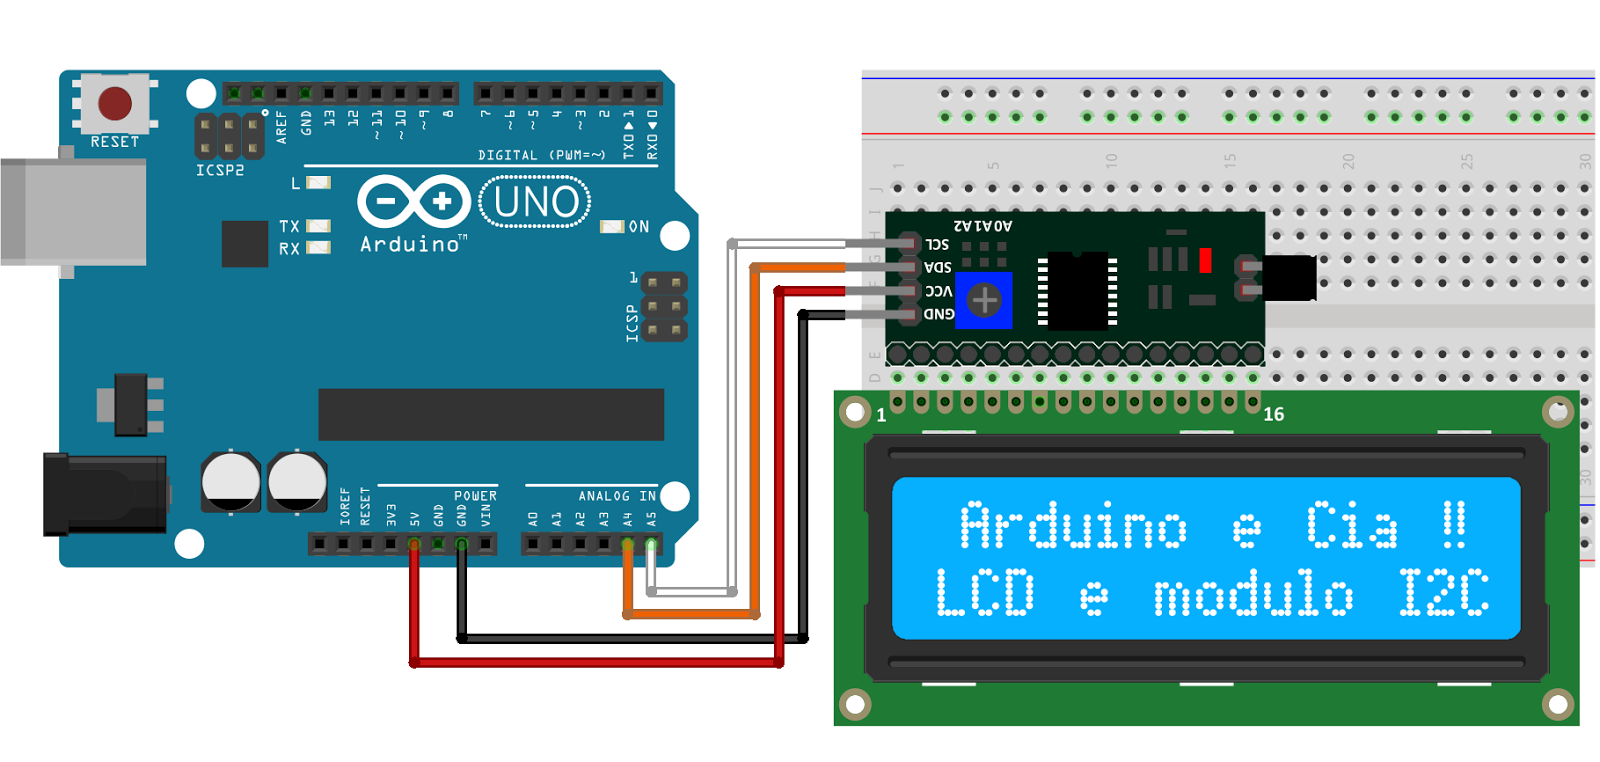 33 Awesome lcd display 16x2 arduino images | كمعون in 2019